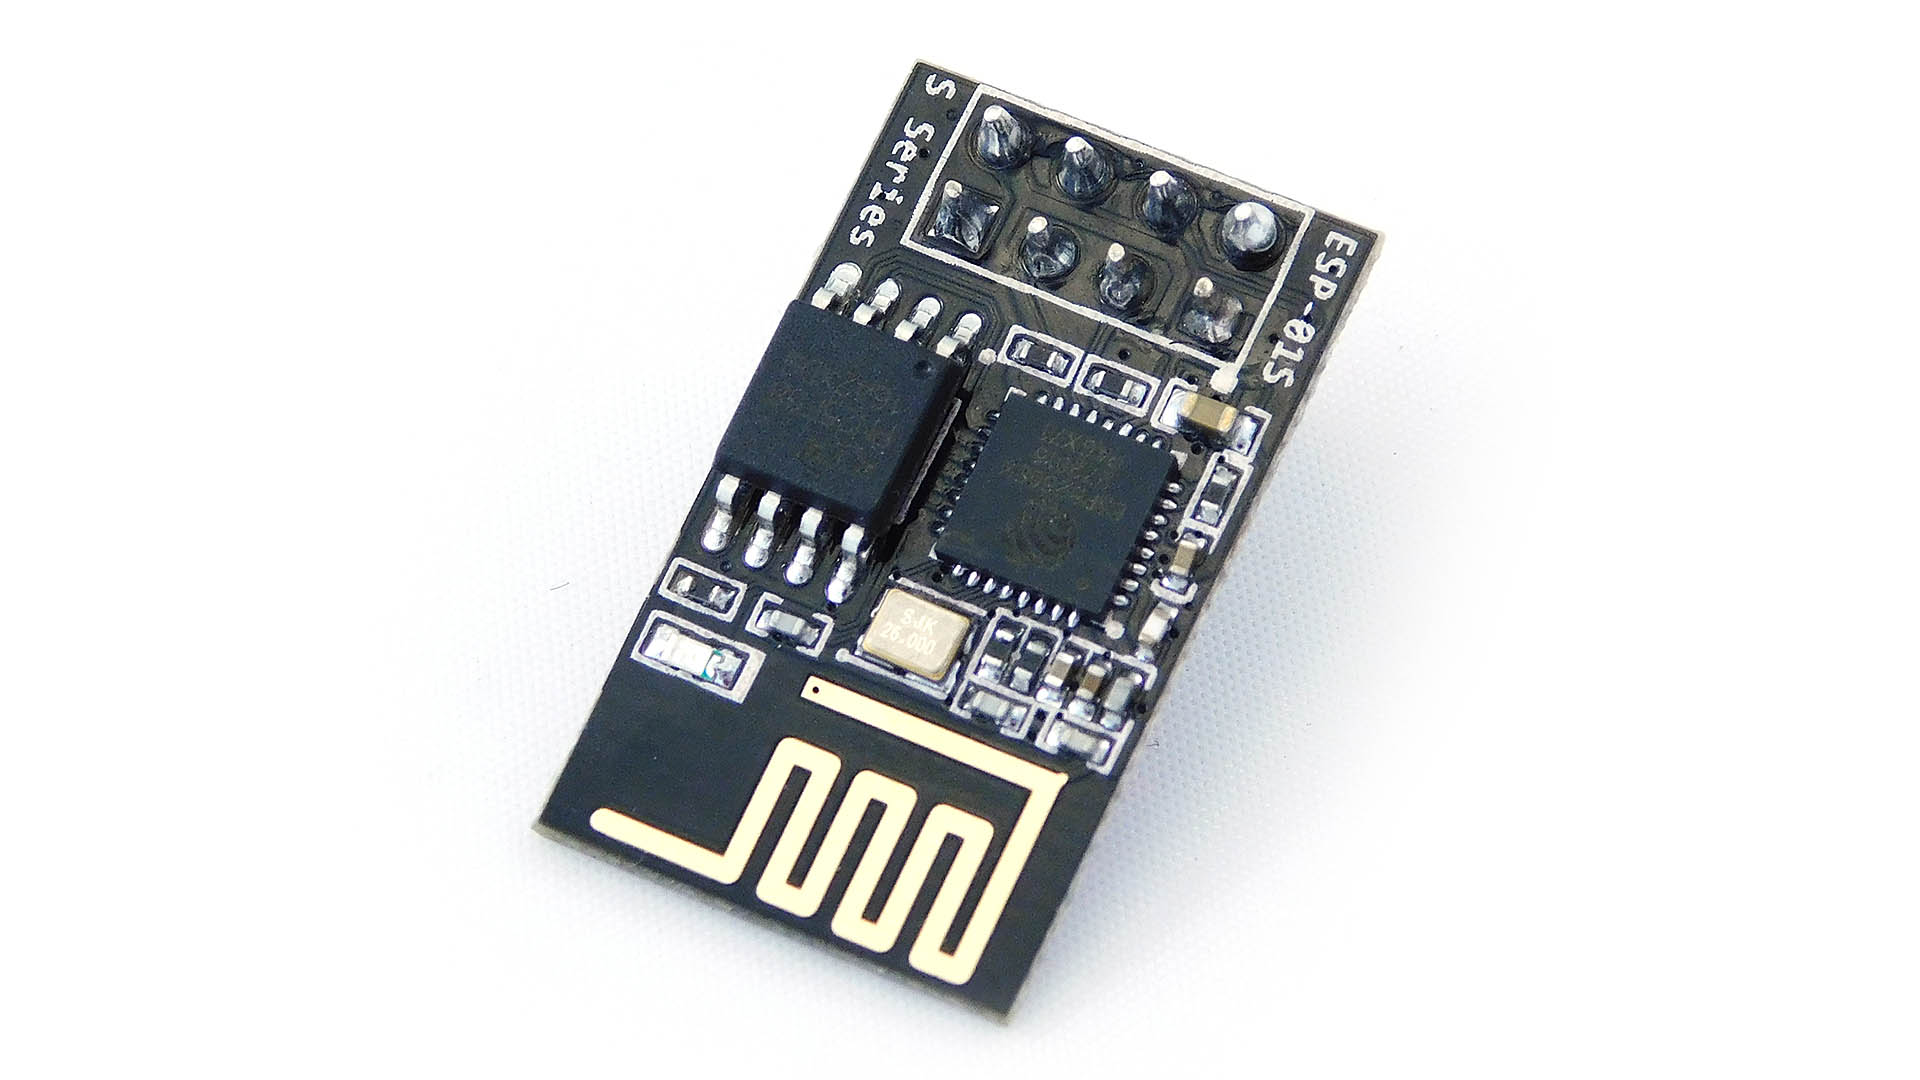 Nettigo Esp8266 01s Simple Easy To Setup Wifi Connectivity For Arduino Isp In System Programming And Standalone Circuits Open